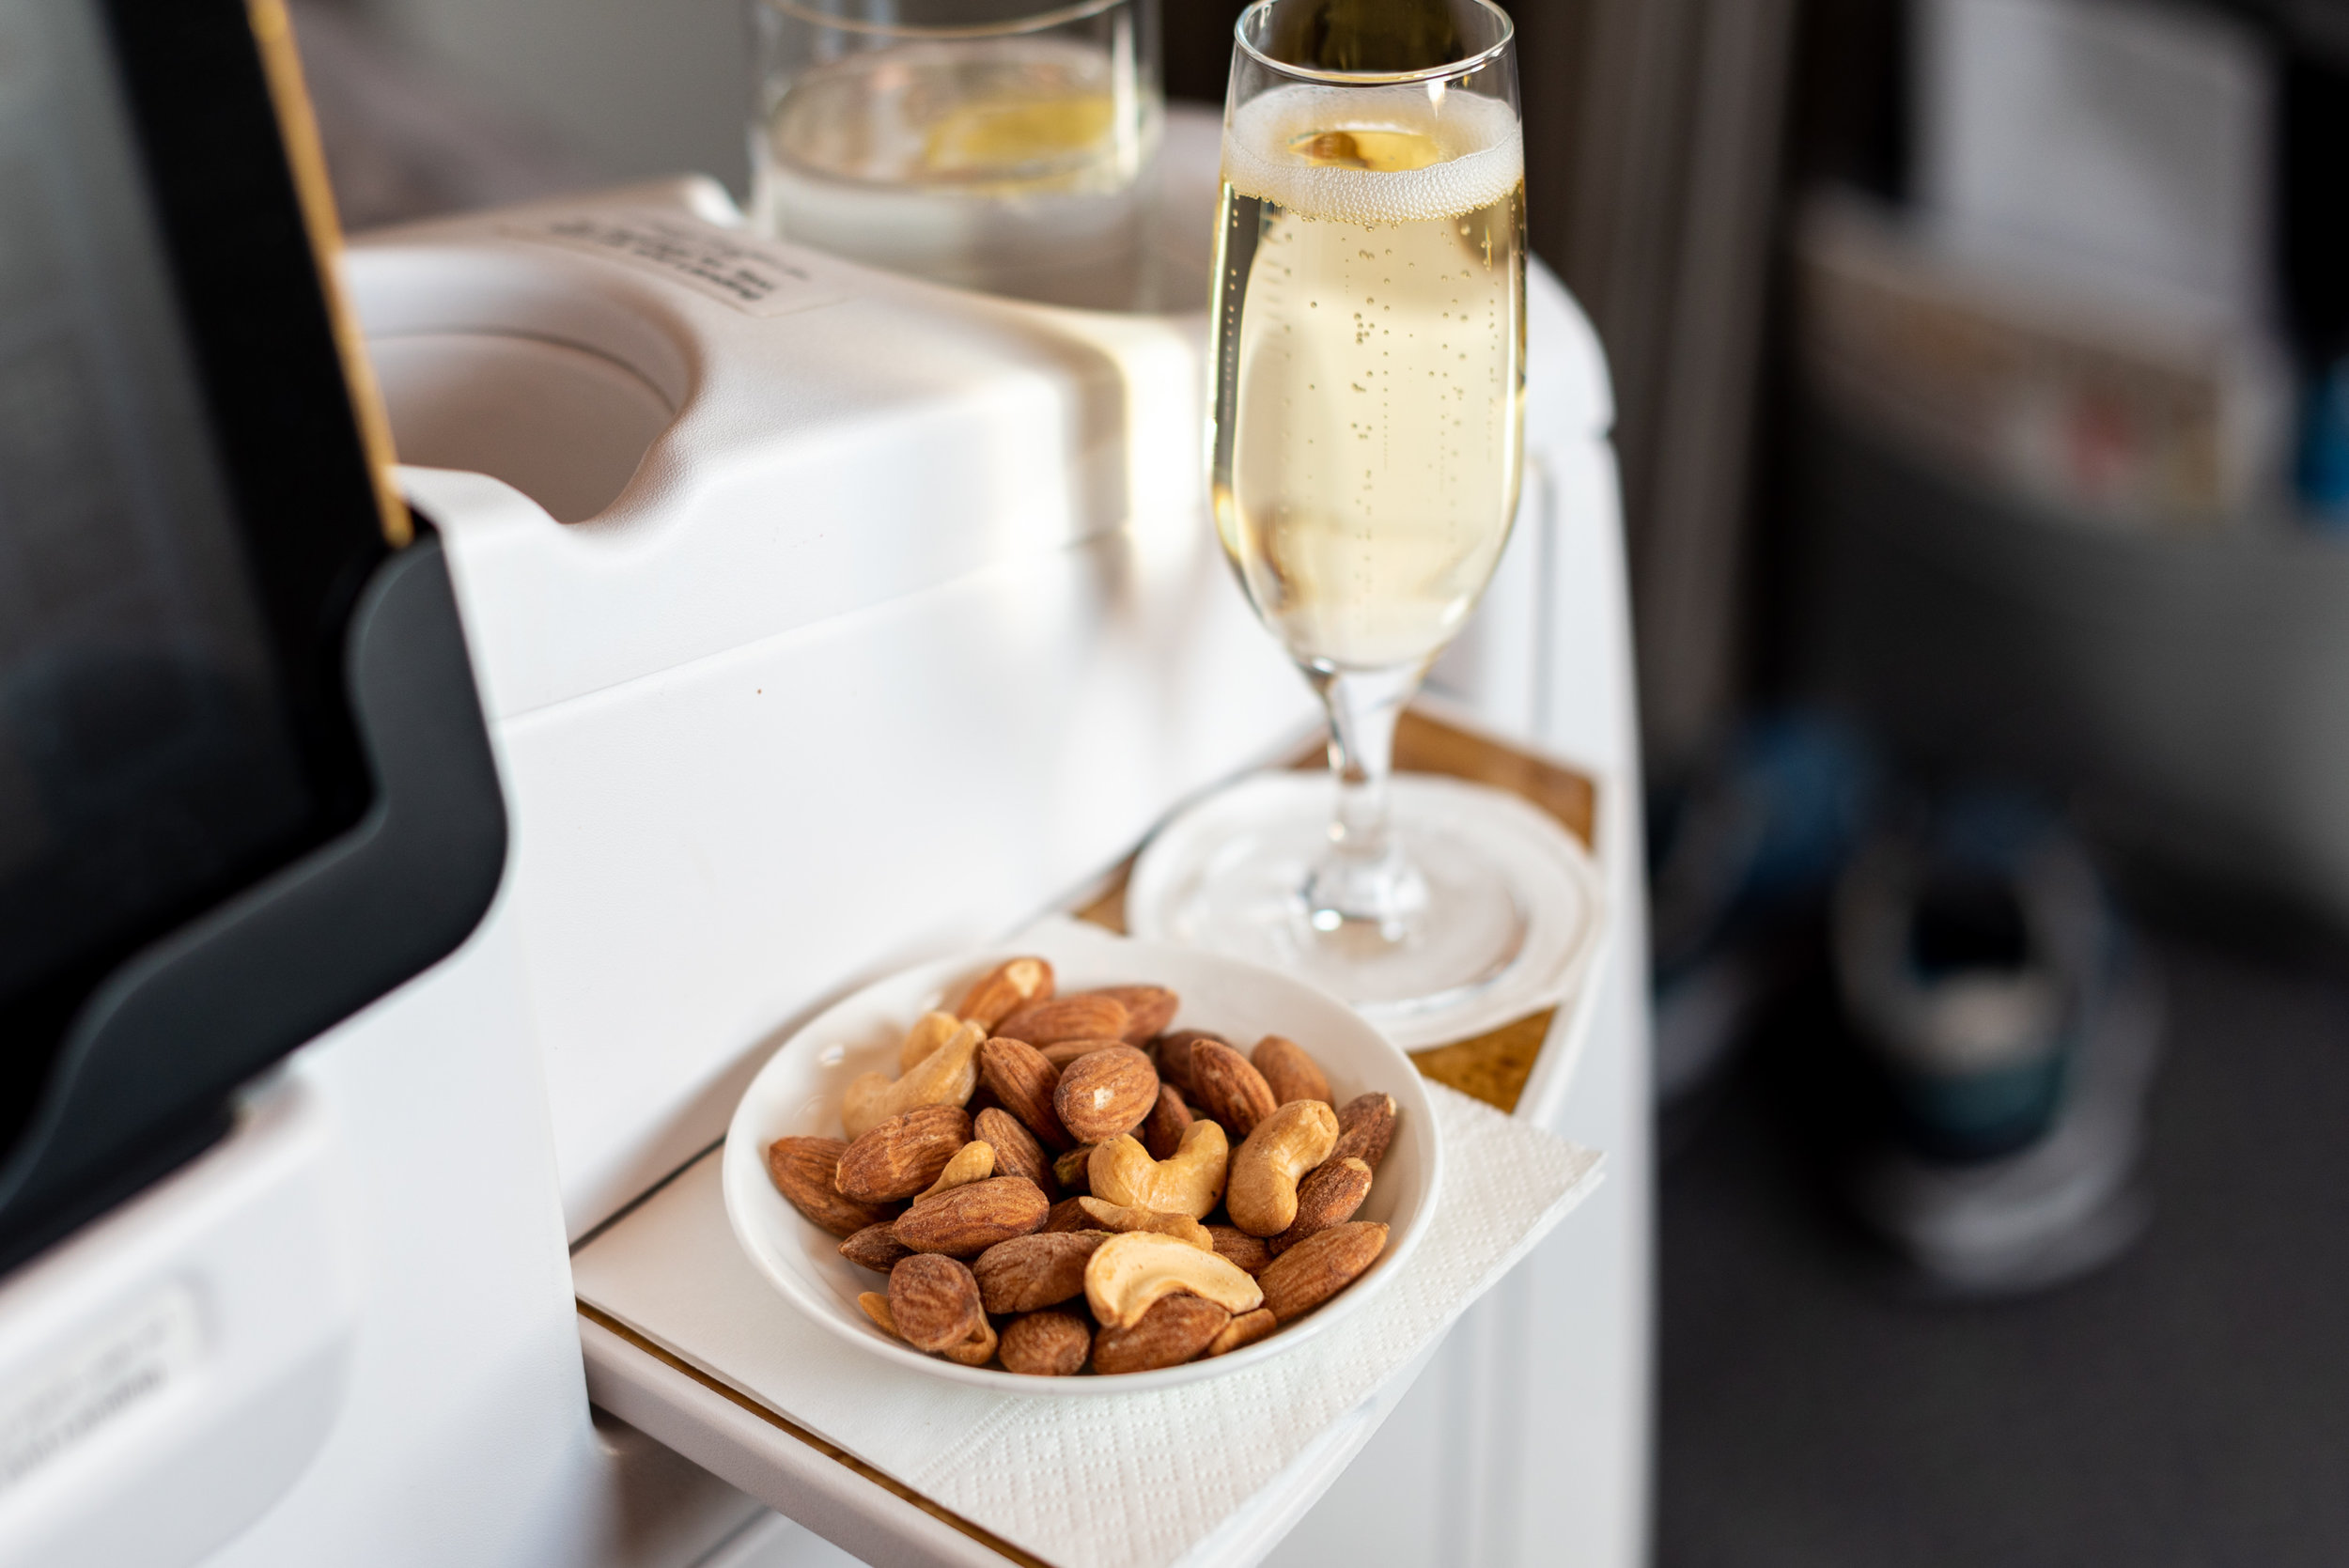 Champagne and Warm Nuts  Emirates Business Class 777-300ER - SIN to DXB